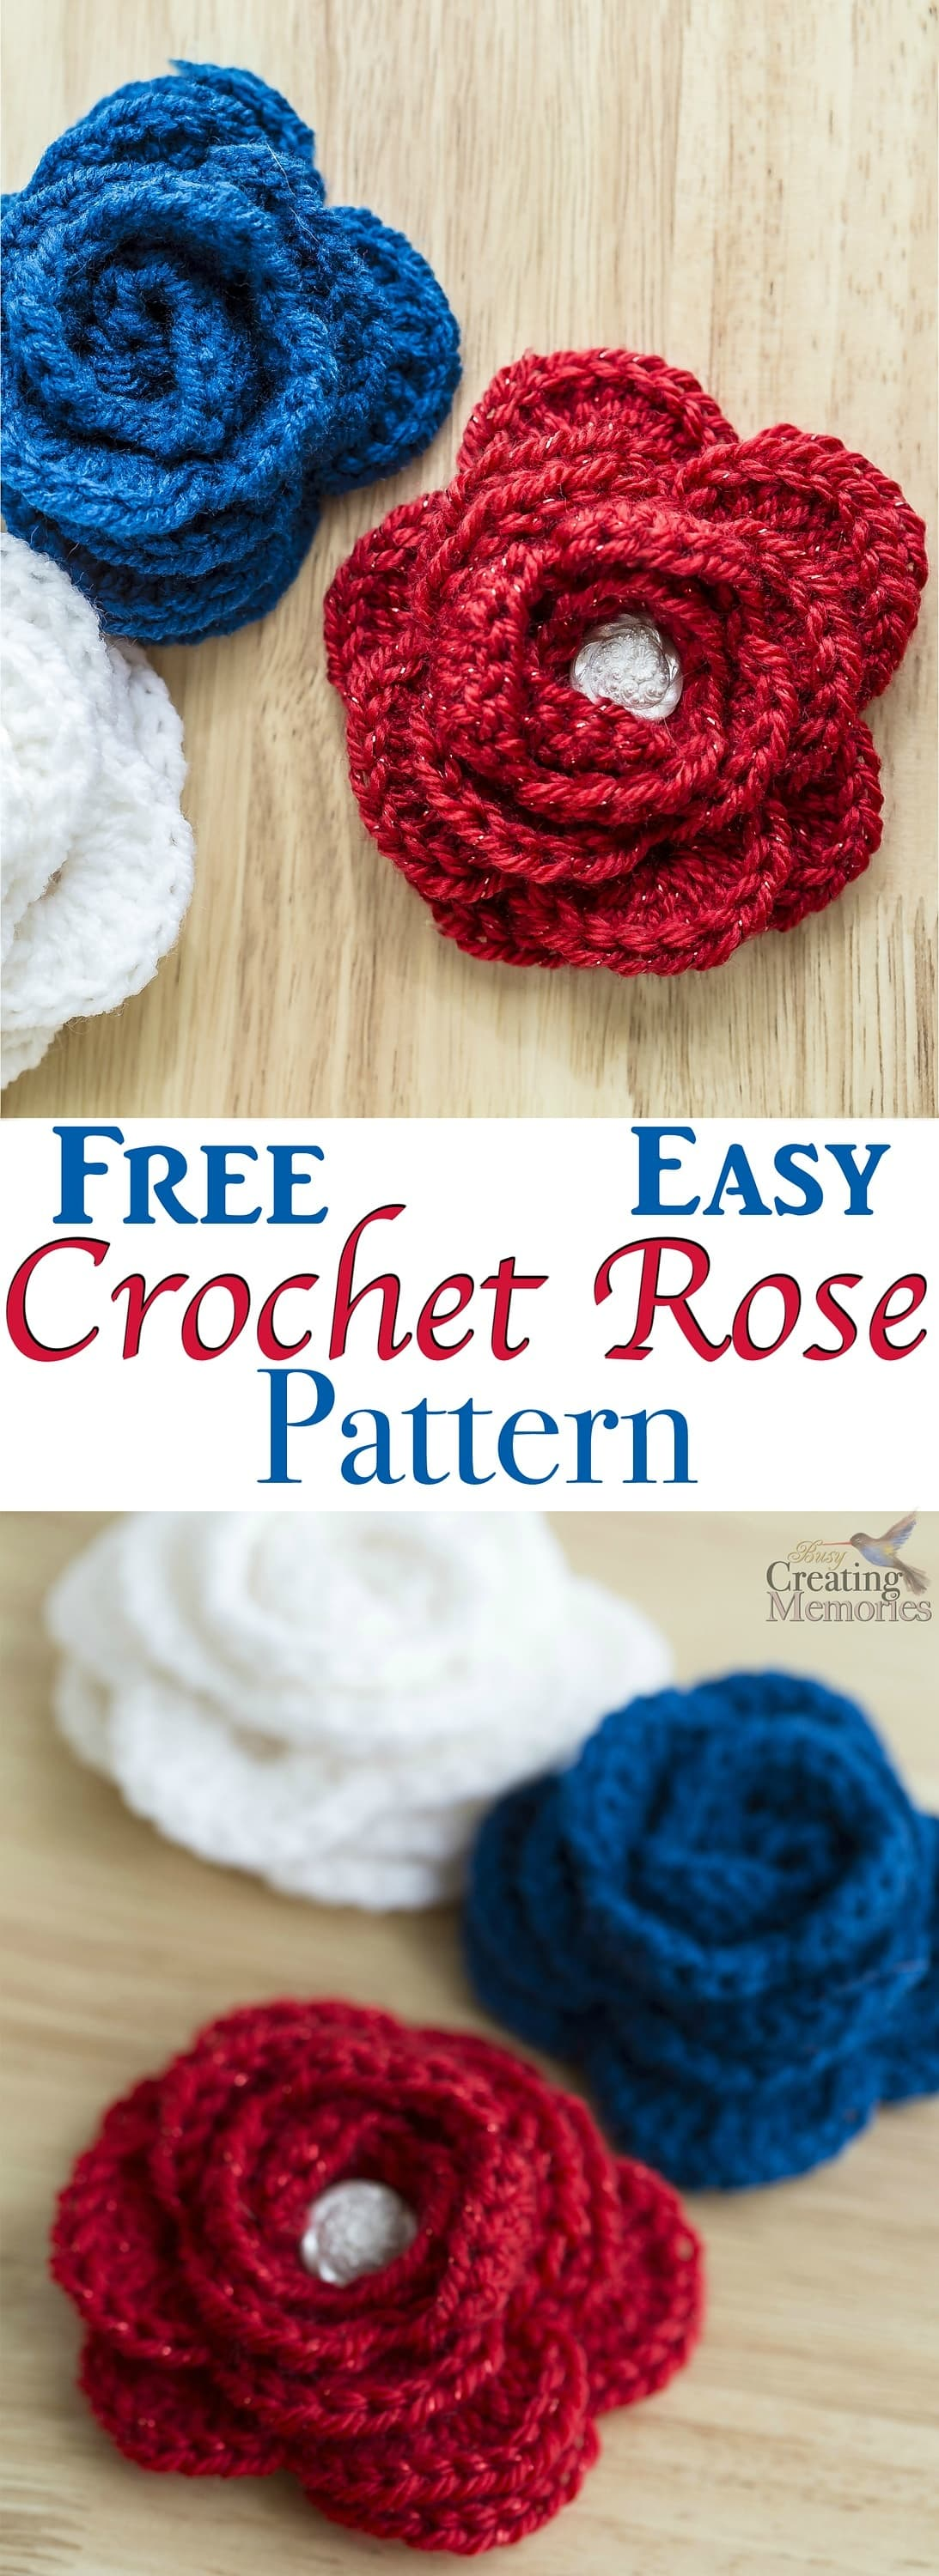 This free easy crochet rose pattern is the perfect project for beginner crochet with beautiful results. They are the perfect embellishment for a crochet hat or crochet headband, Brooch bag pin or home decor. Included is a left-handed crochet video tutorial